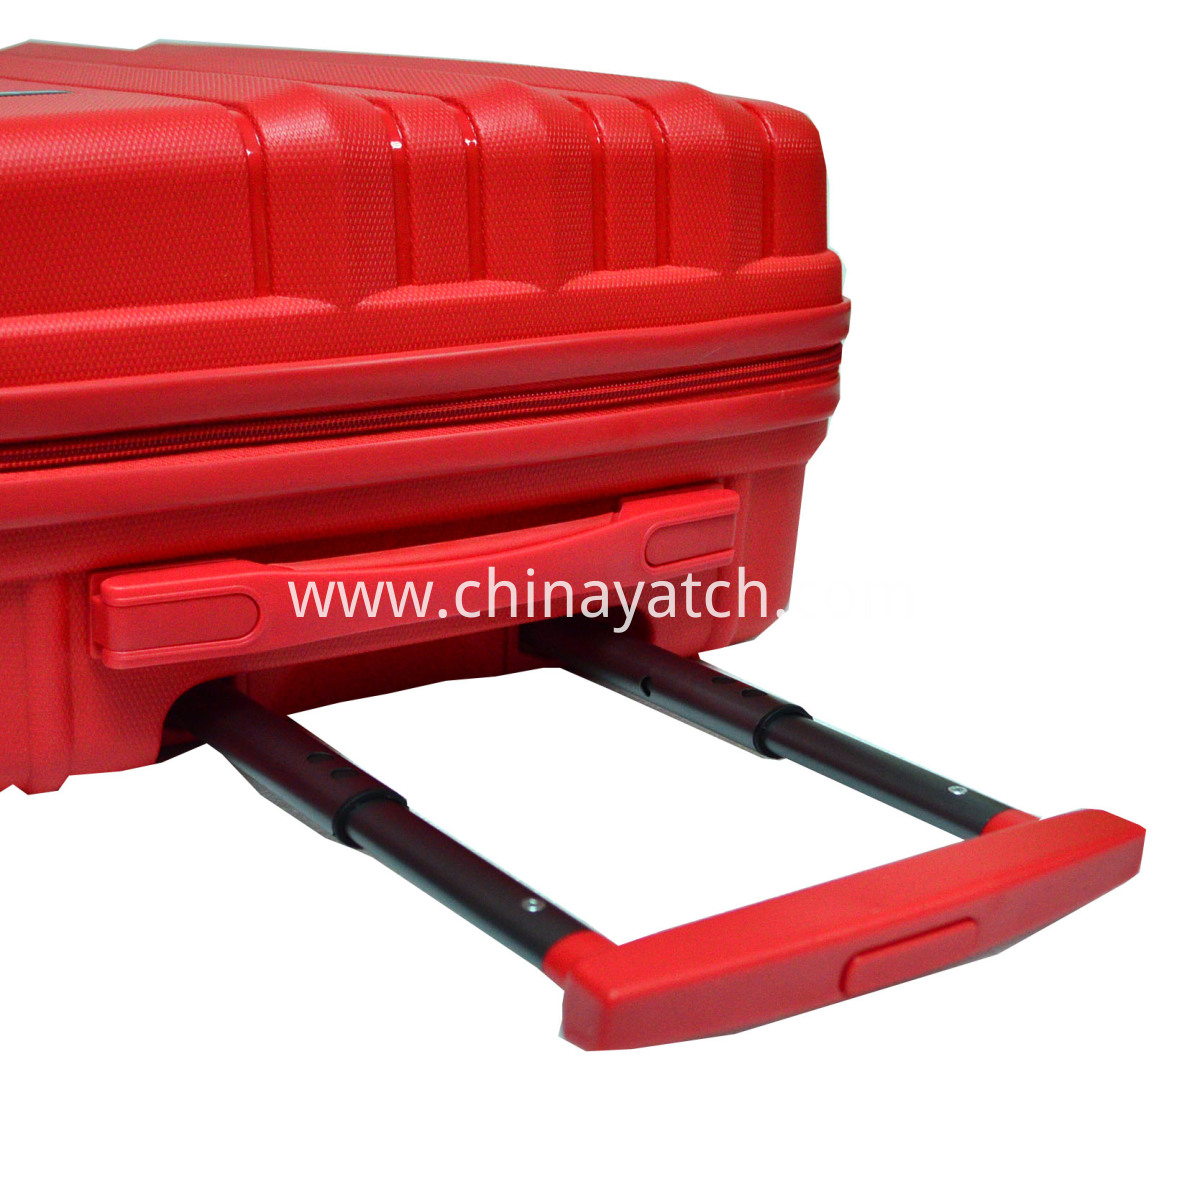 PP trolley suicase set